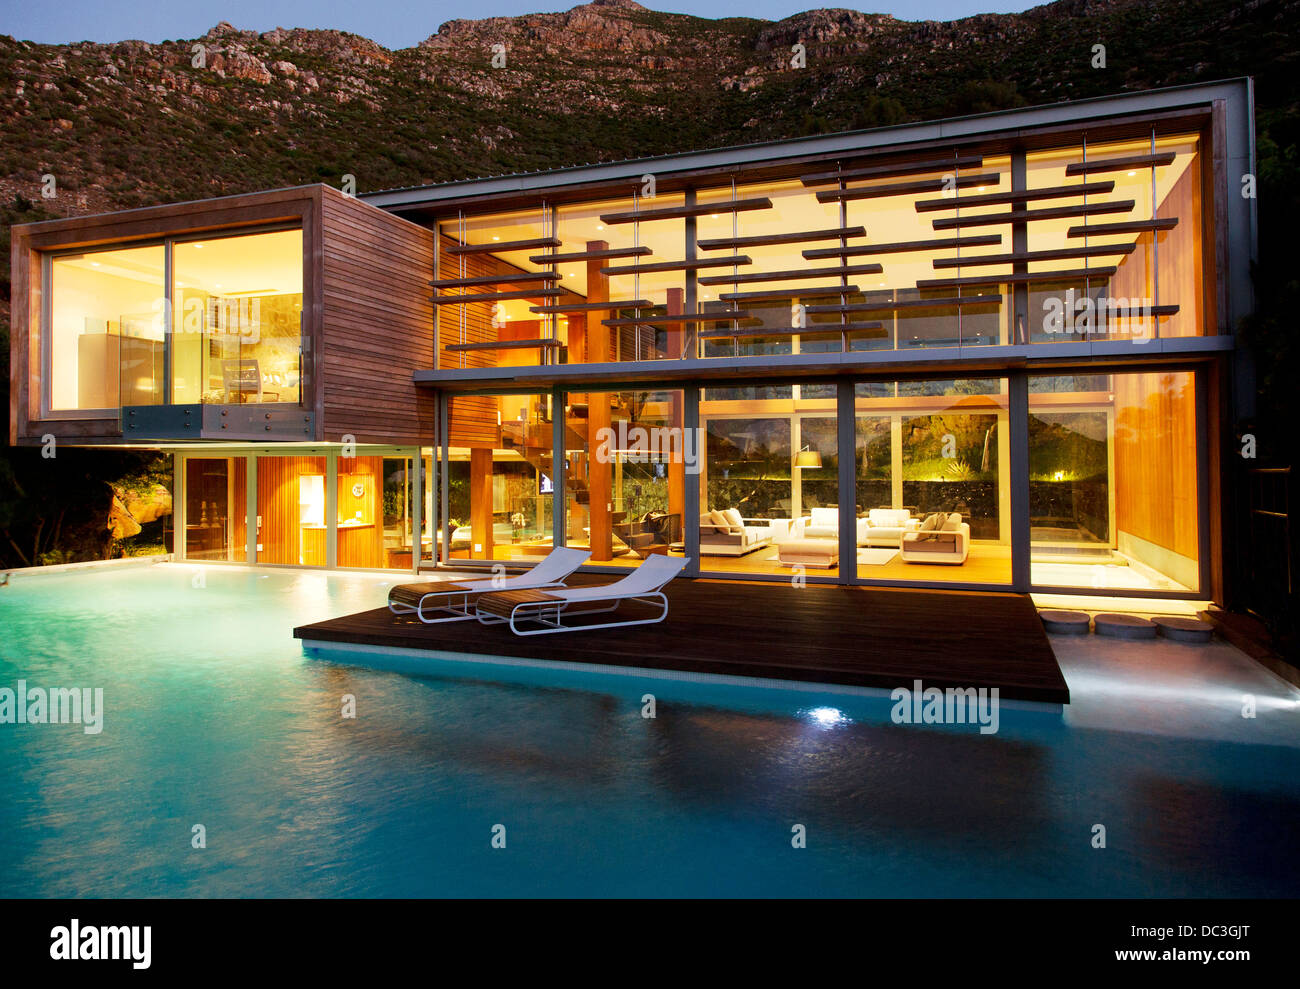 home swimming pools at night. Swimming Pool And Modern House At Night Home Pools Alamy